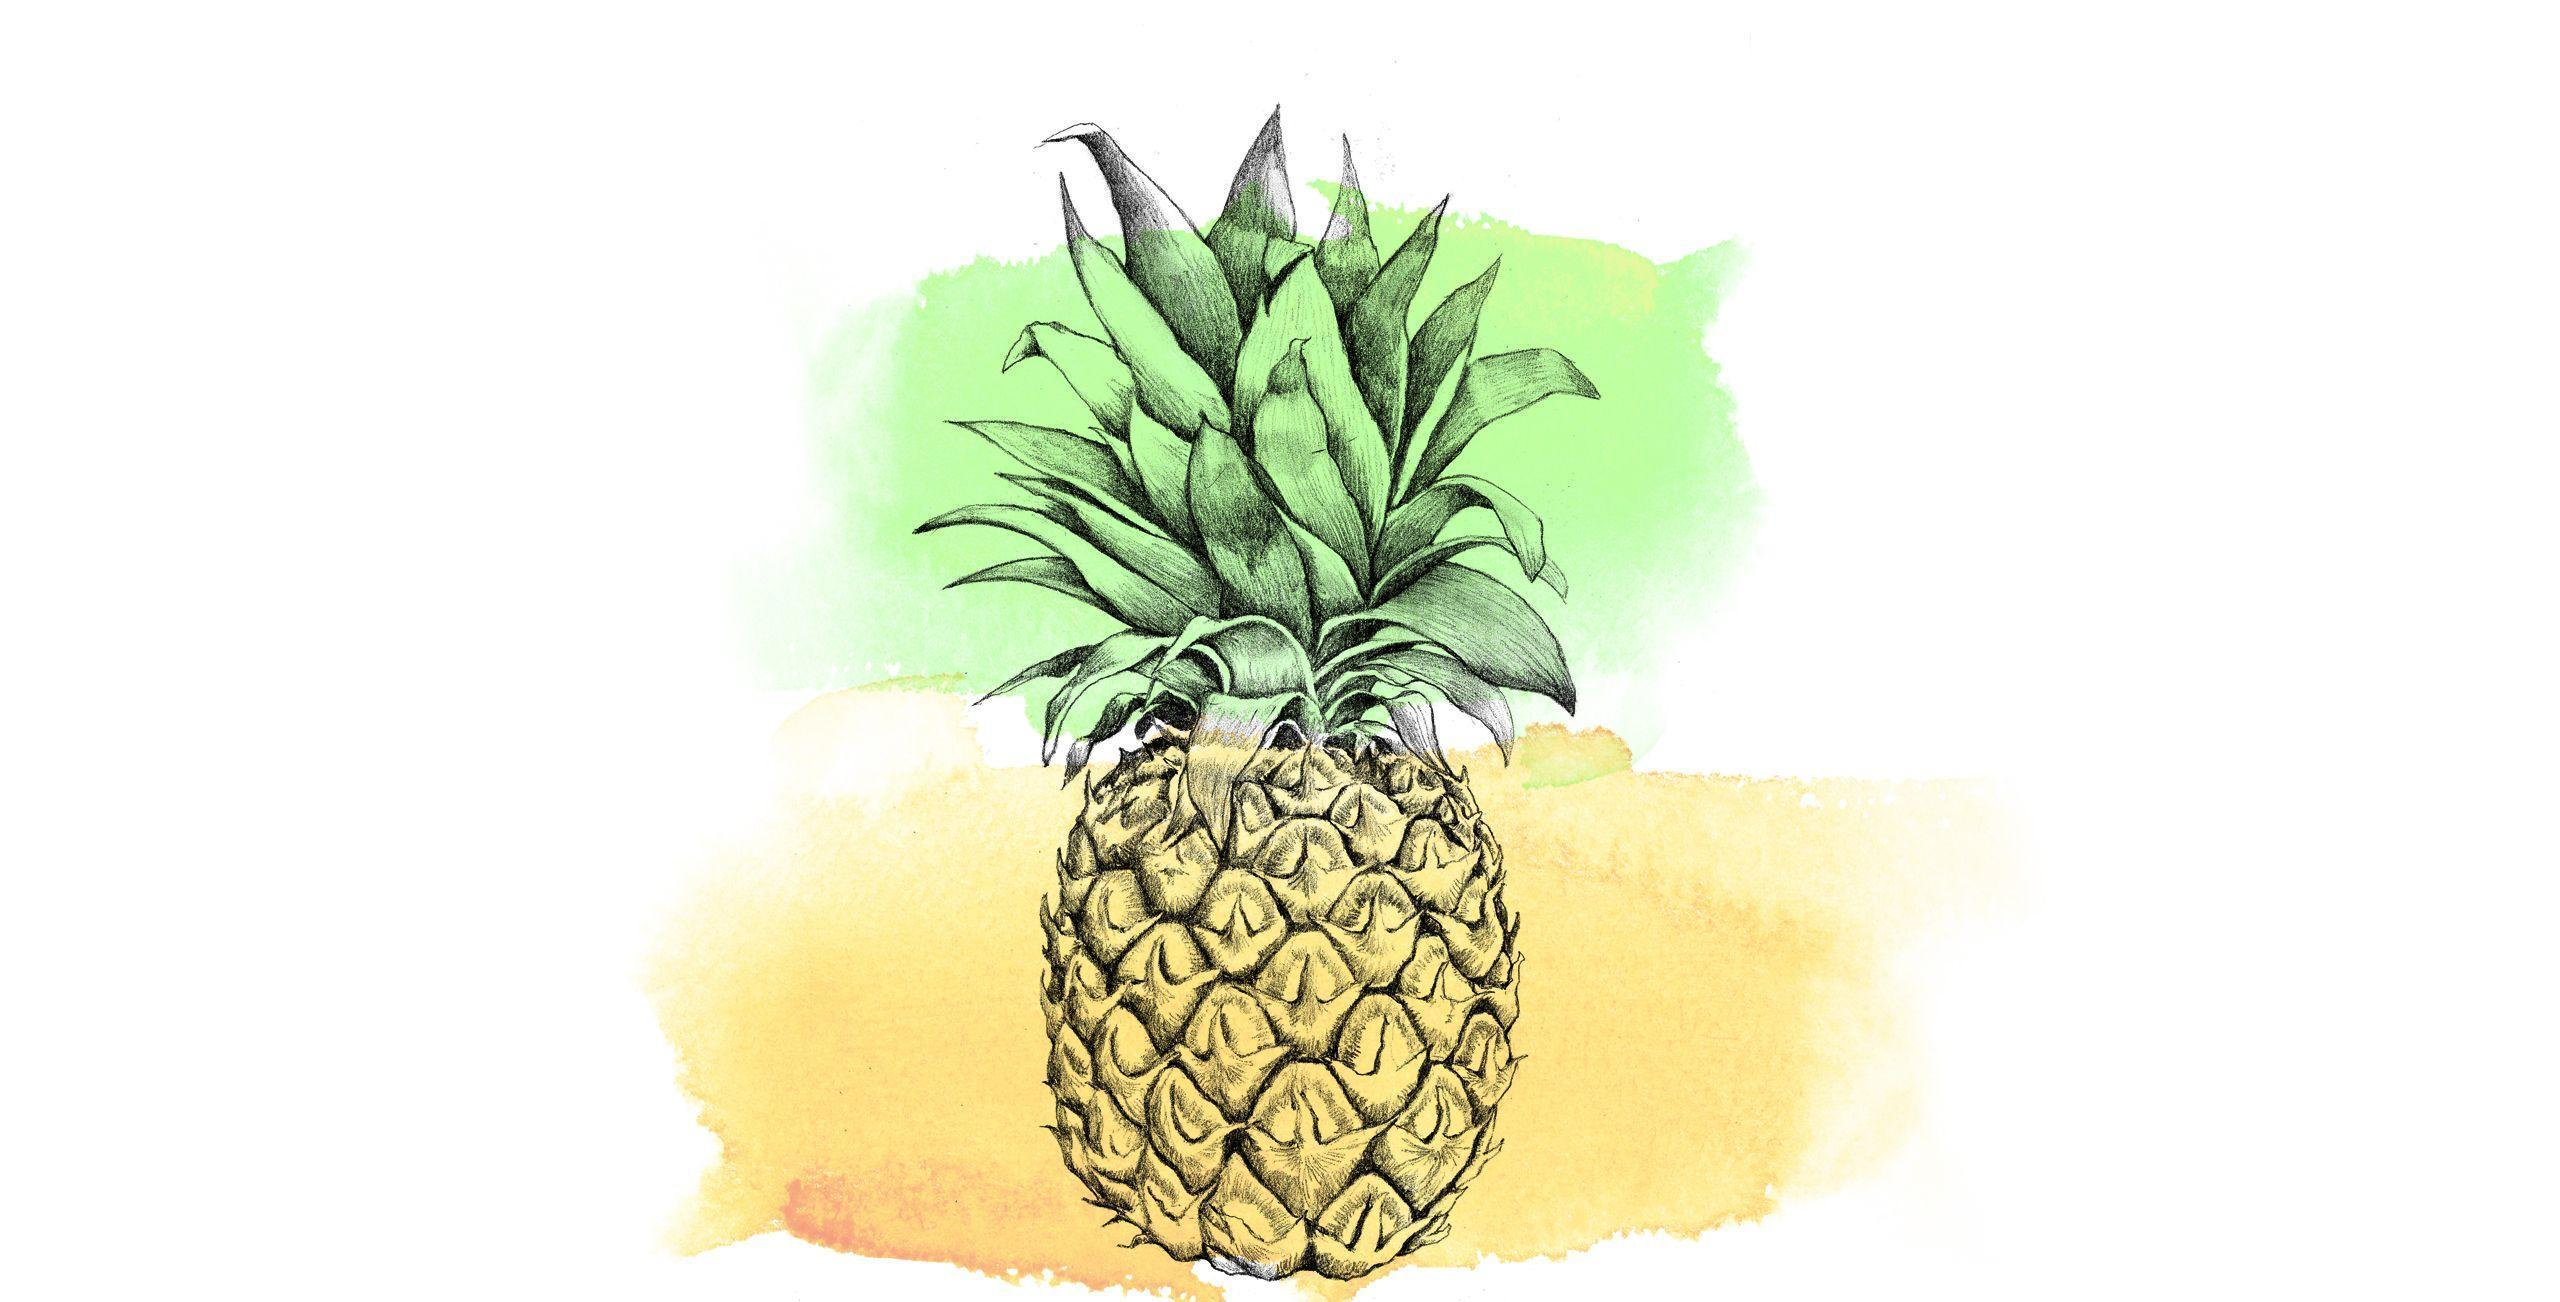 Pineapple Wallpapers Wallpaper Cave HD Wallpapers Download Free Images Wallpaper [1000image.com]